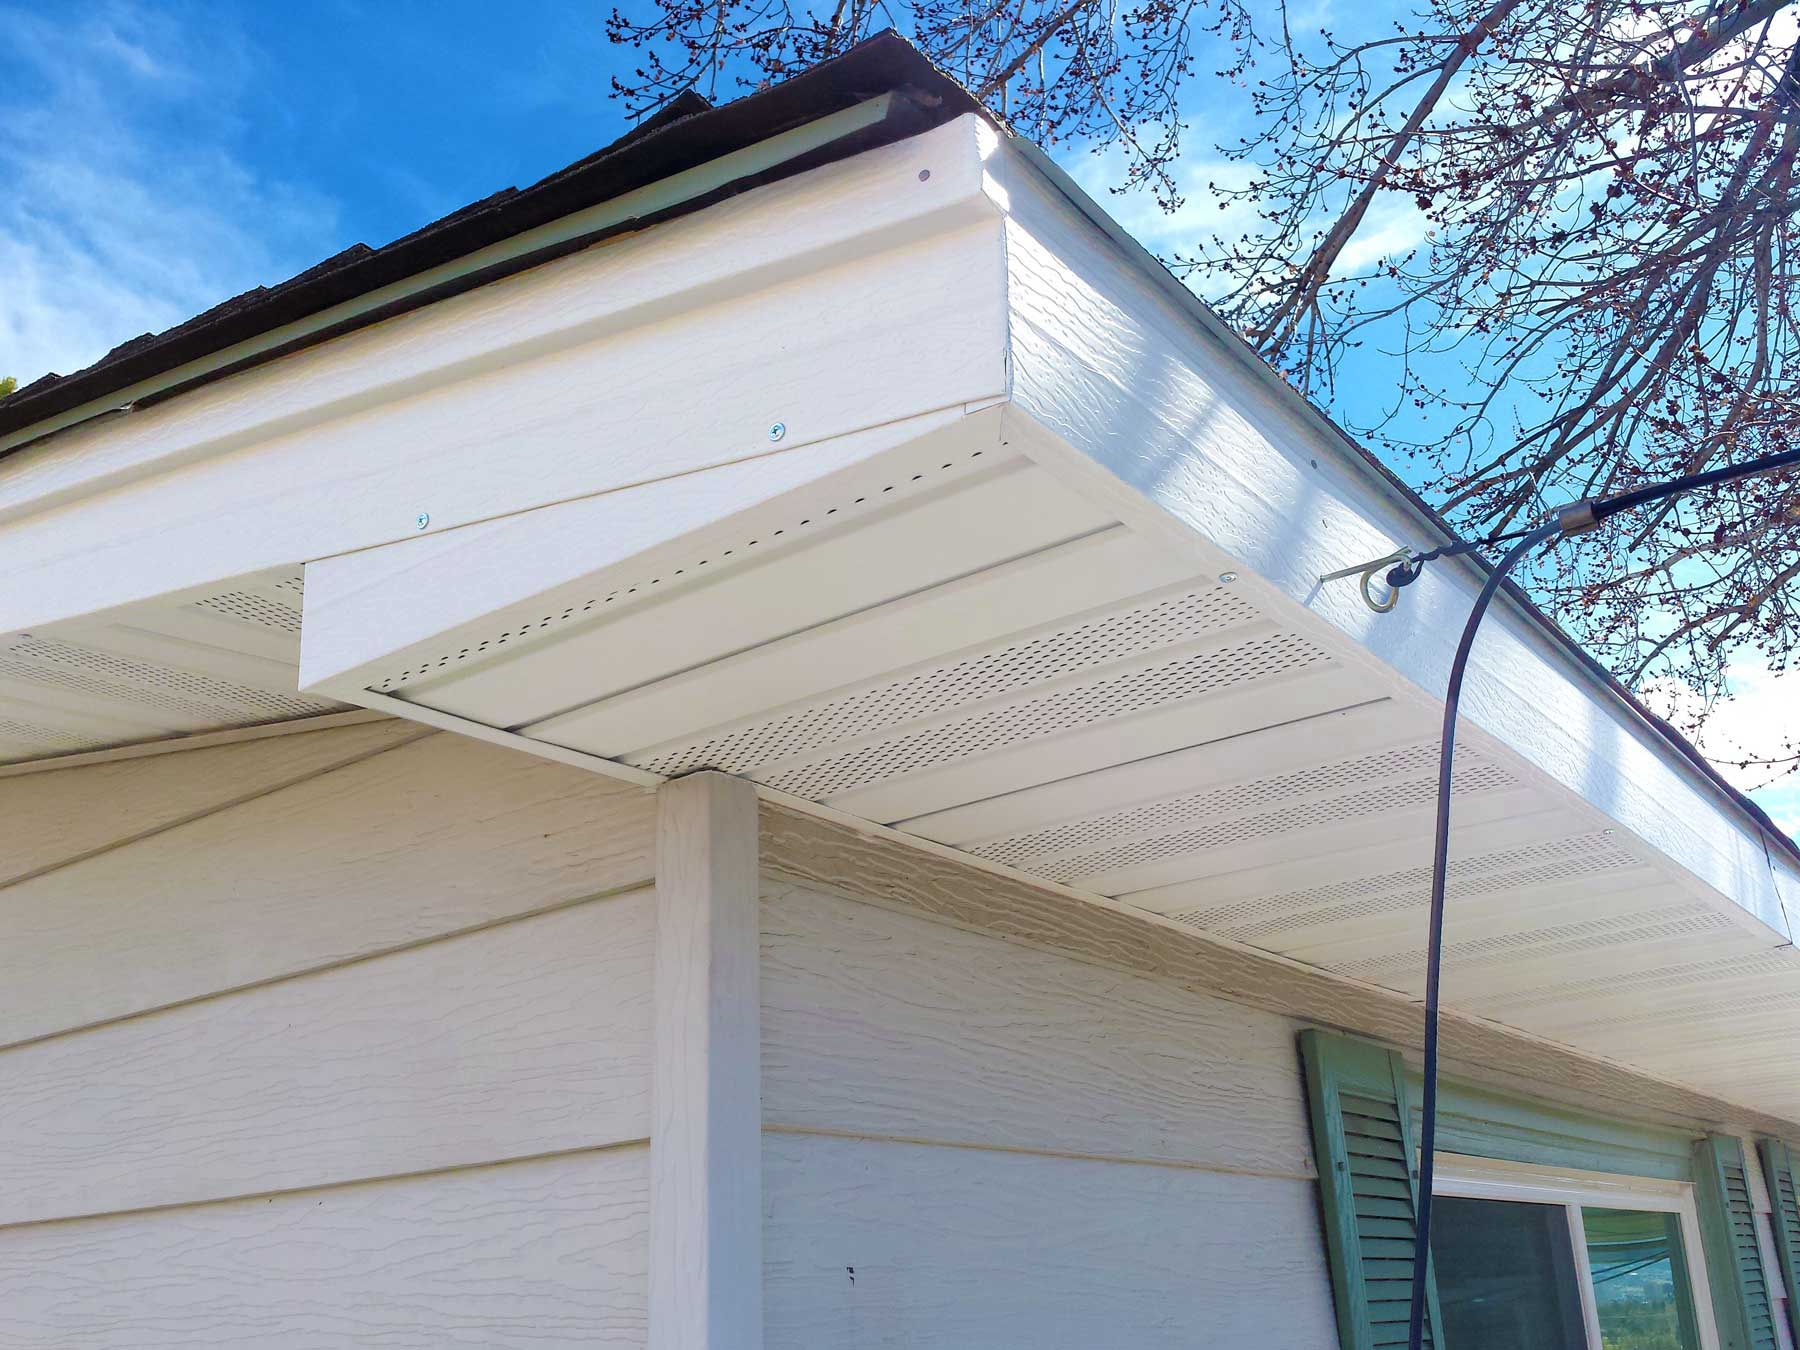 Aluminum Soffit Steel Fascia Board Colorado Springs